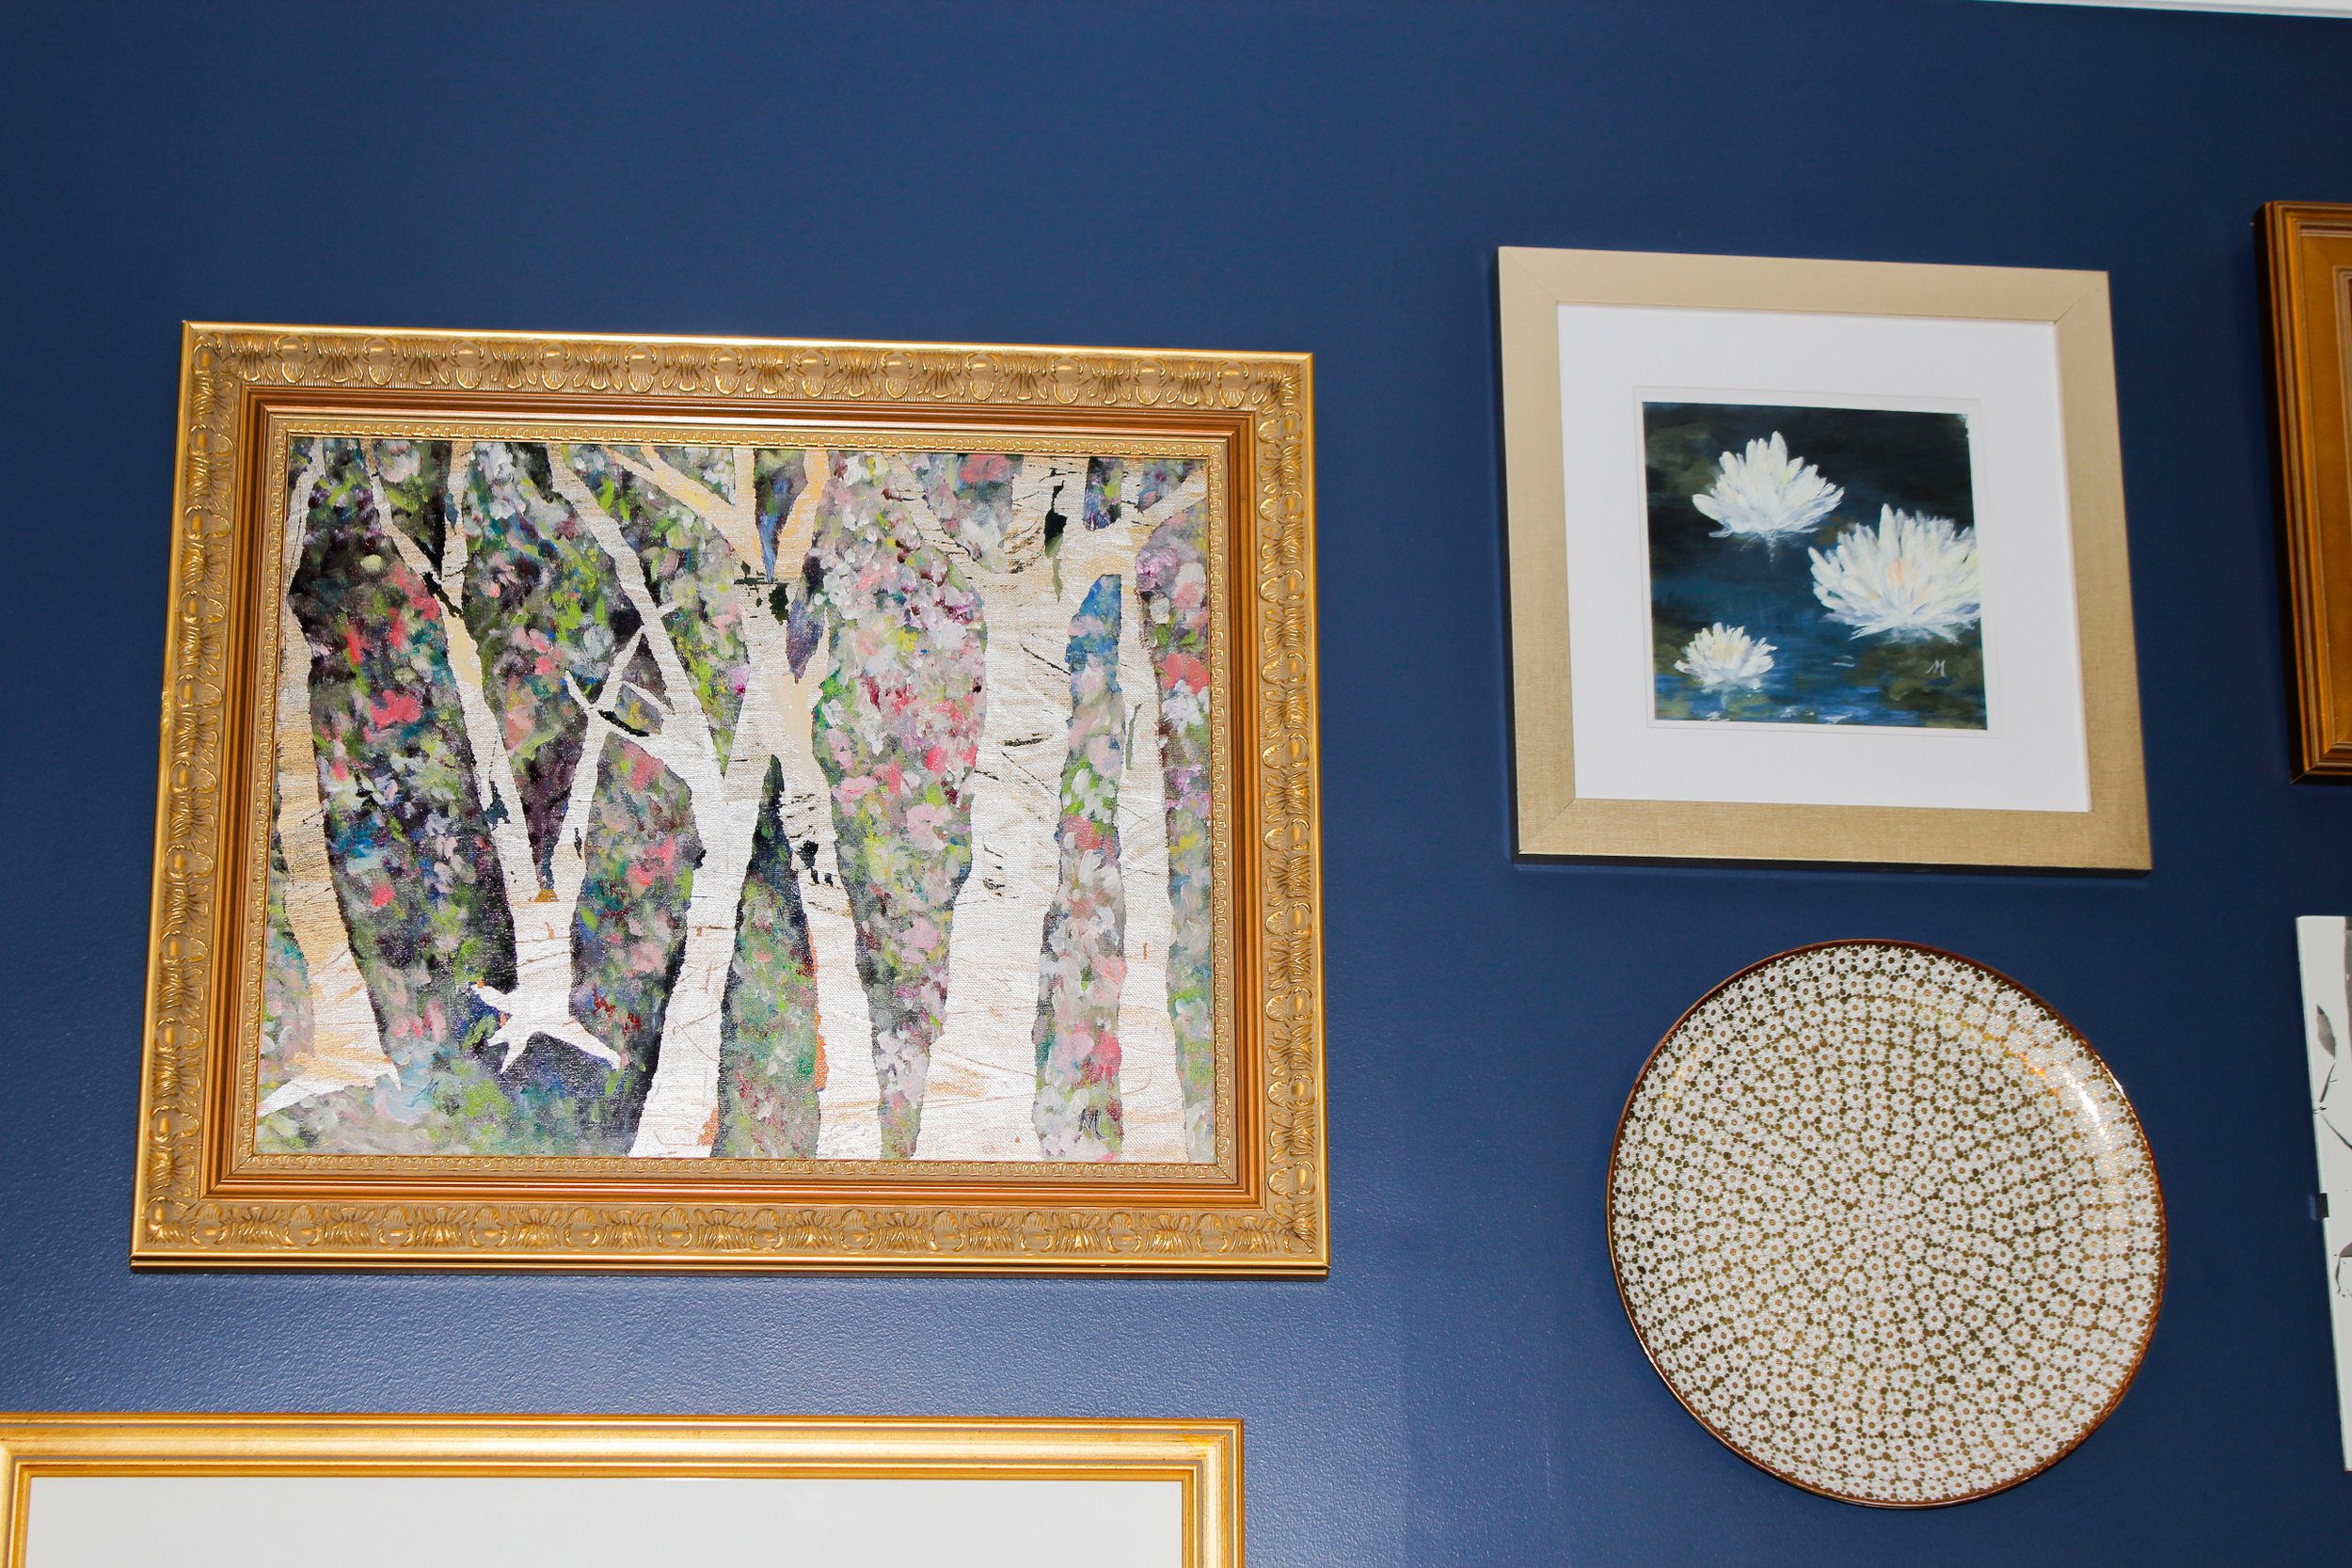 Five original pieces of artwork by Michele Araquette were included in the gallery wall.